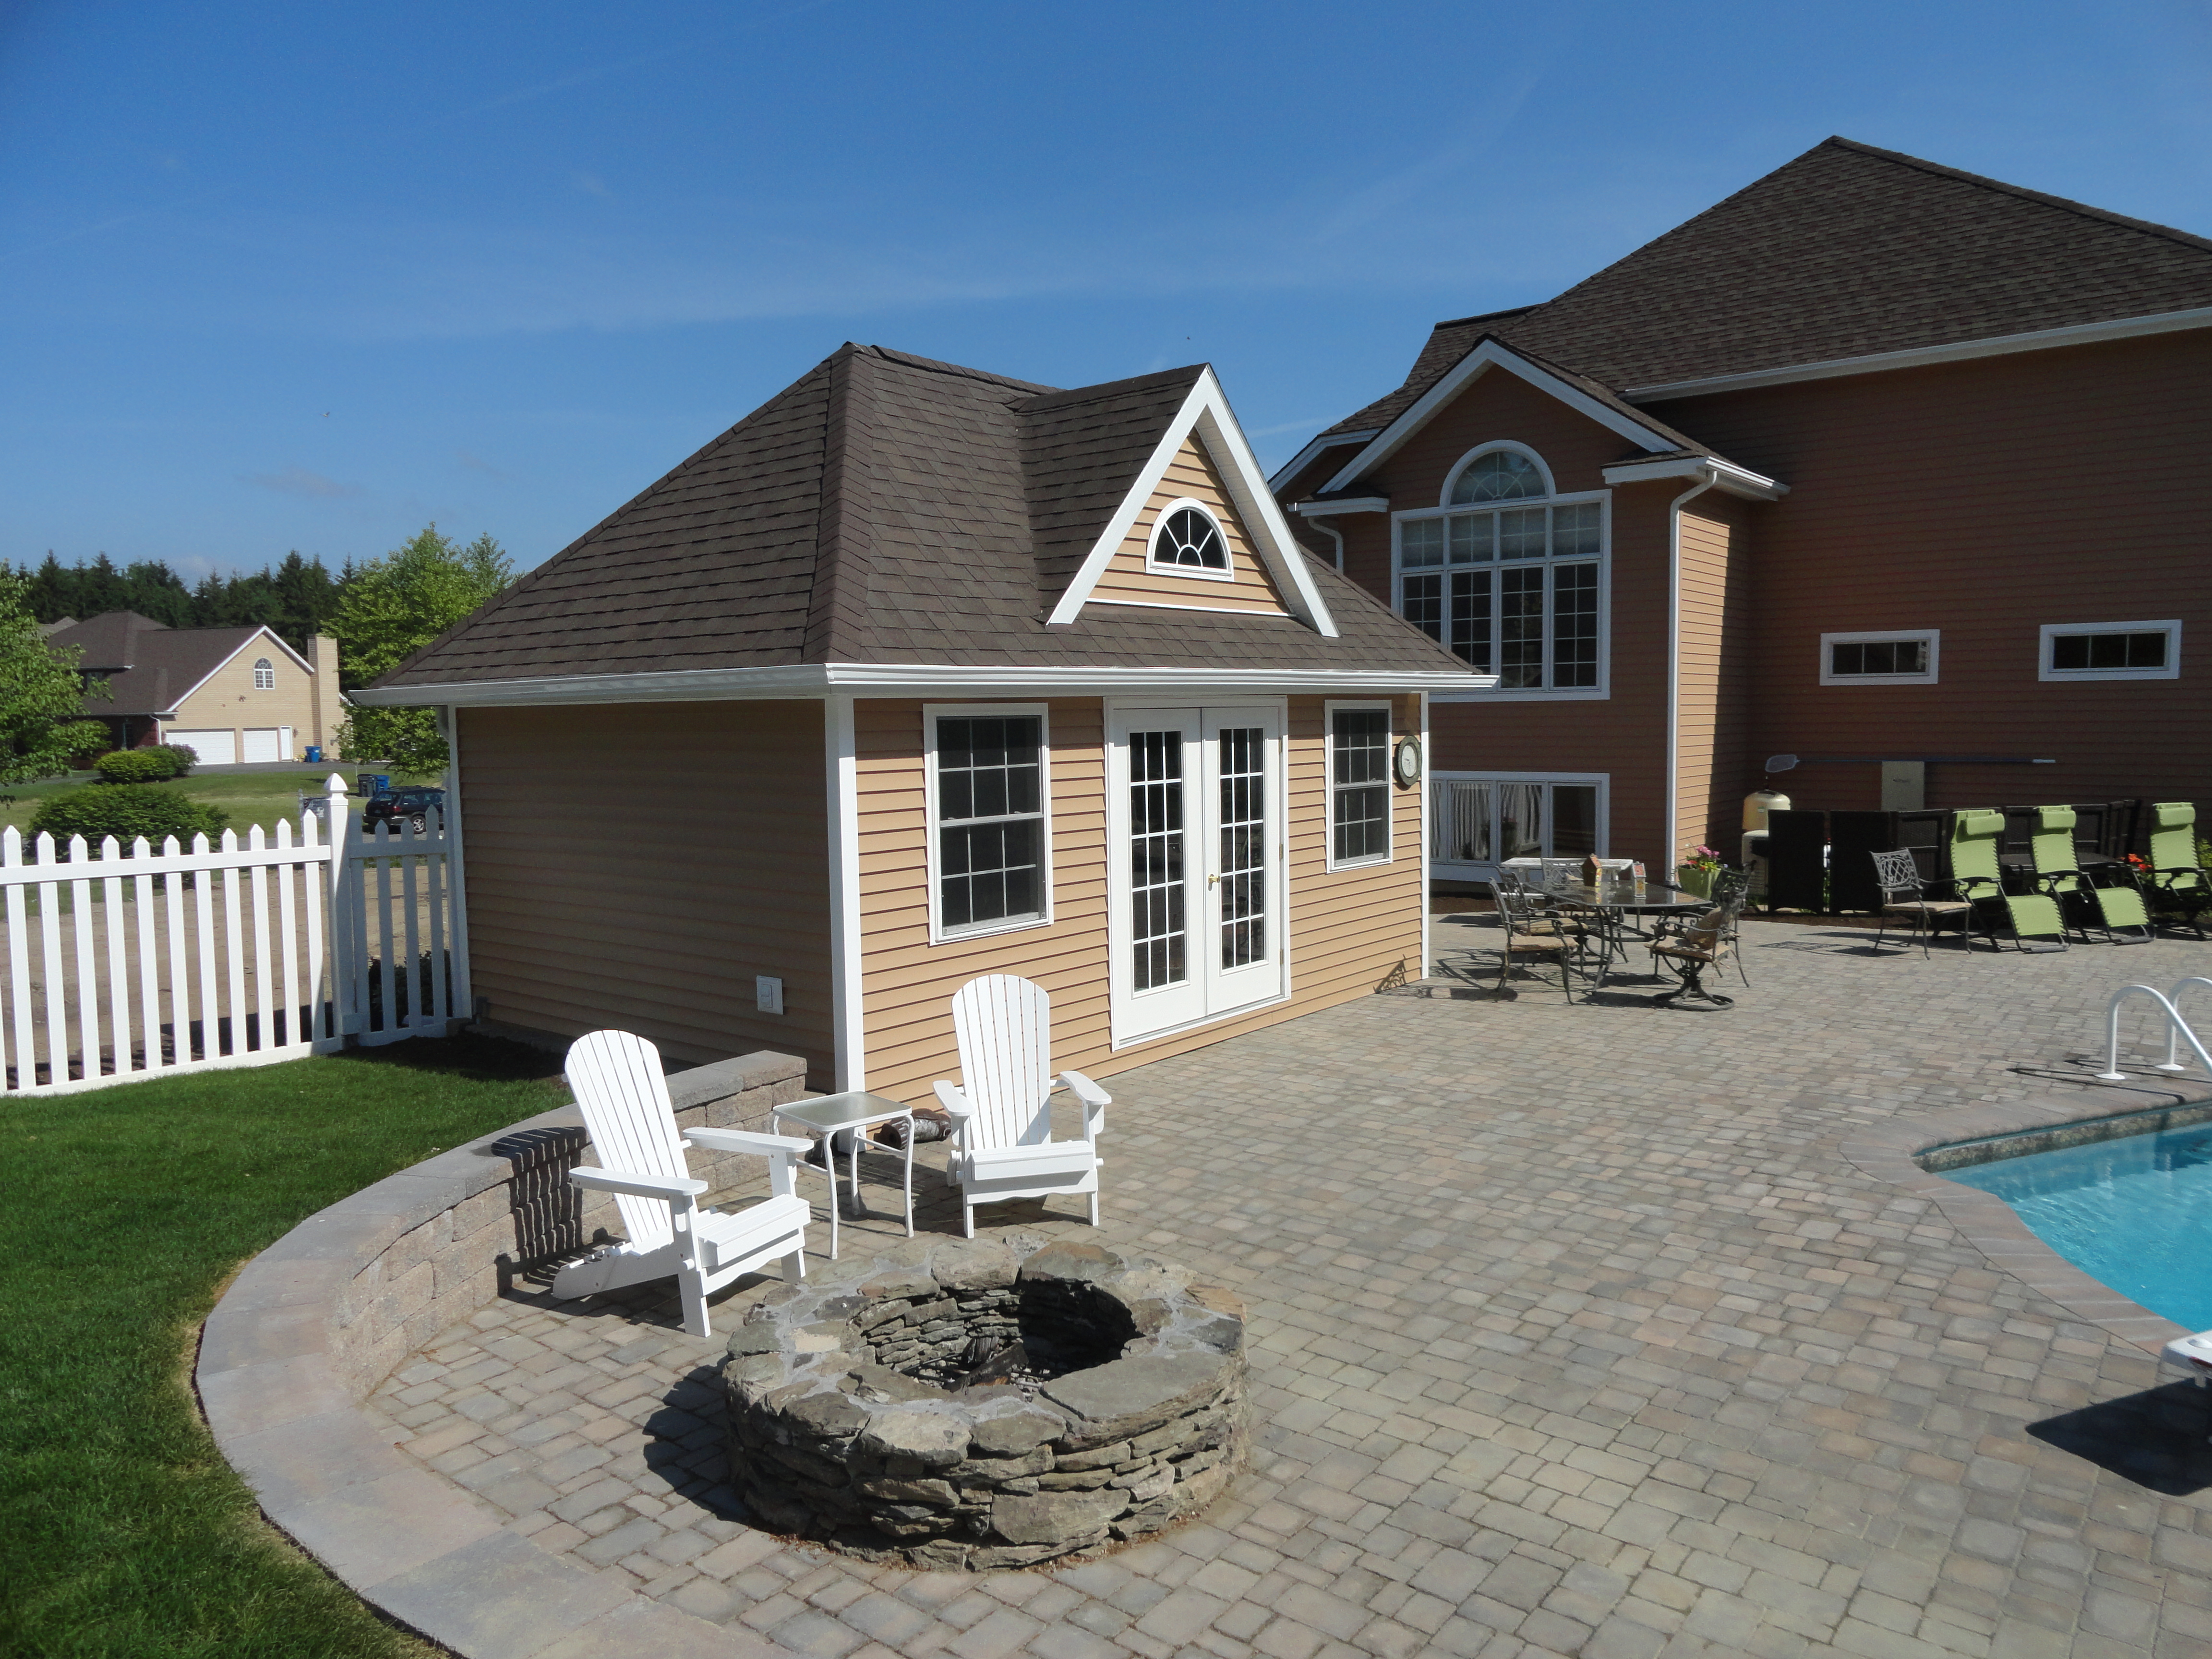 Outdoor Living | Patriot Construction of Upstate New York ... on Patriot Outdoor Living id=38051